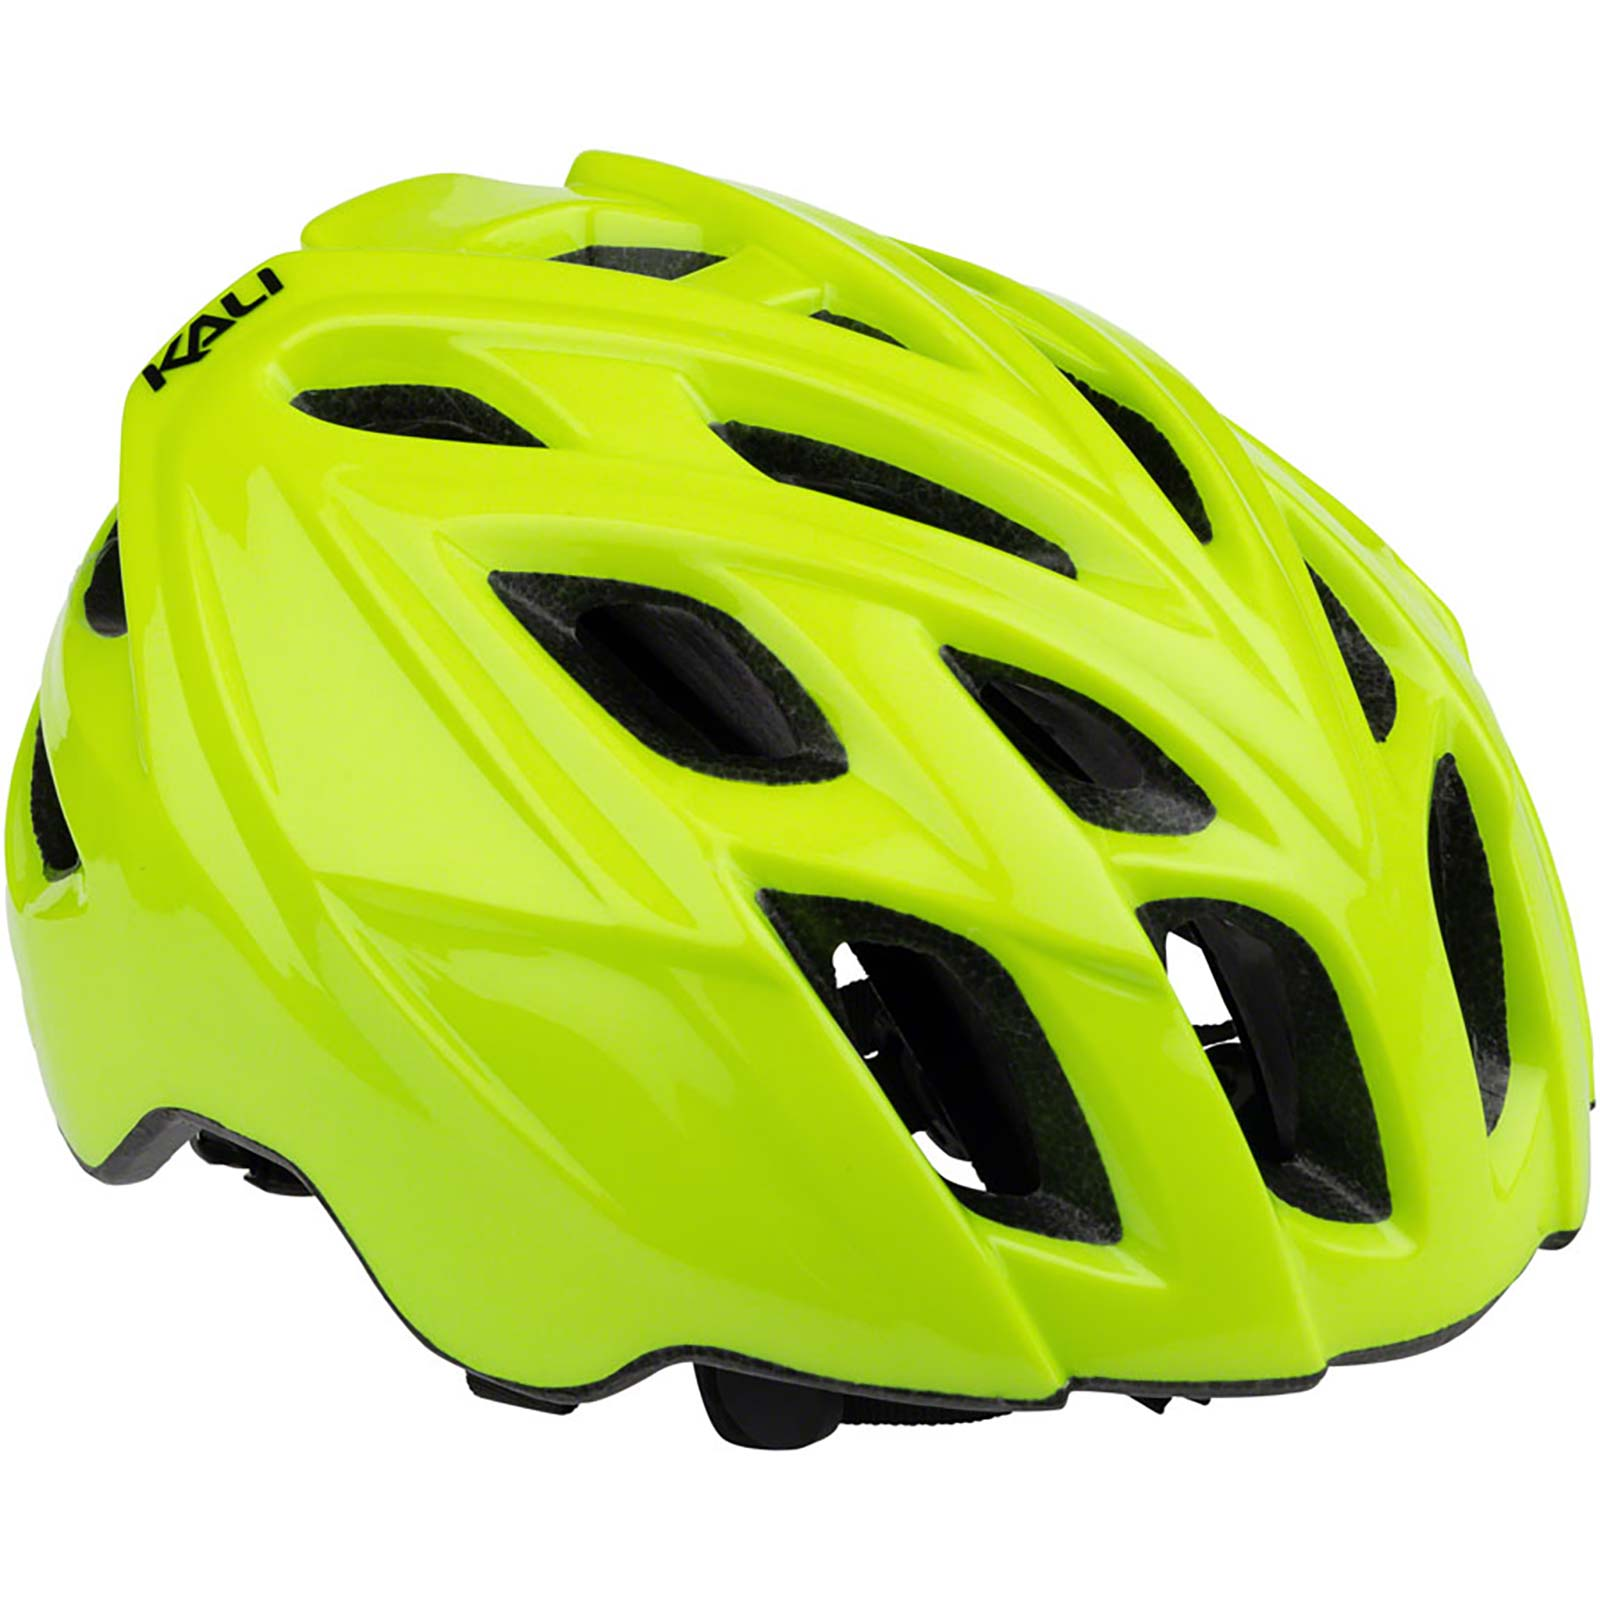 Kali Protectives Chakra Mono Bicycle Helmet